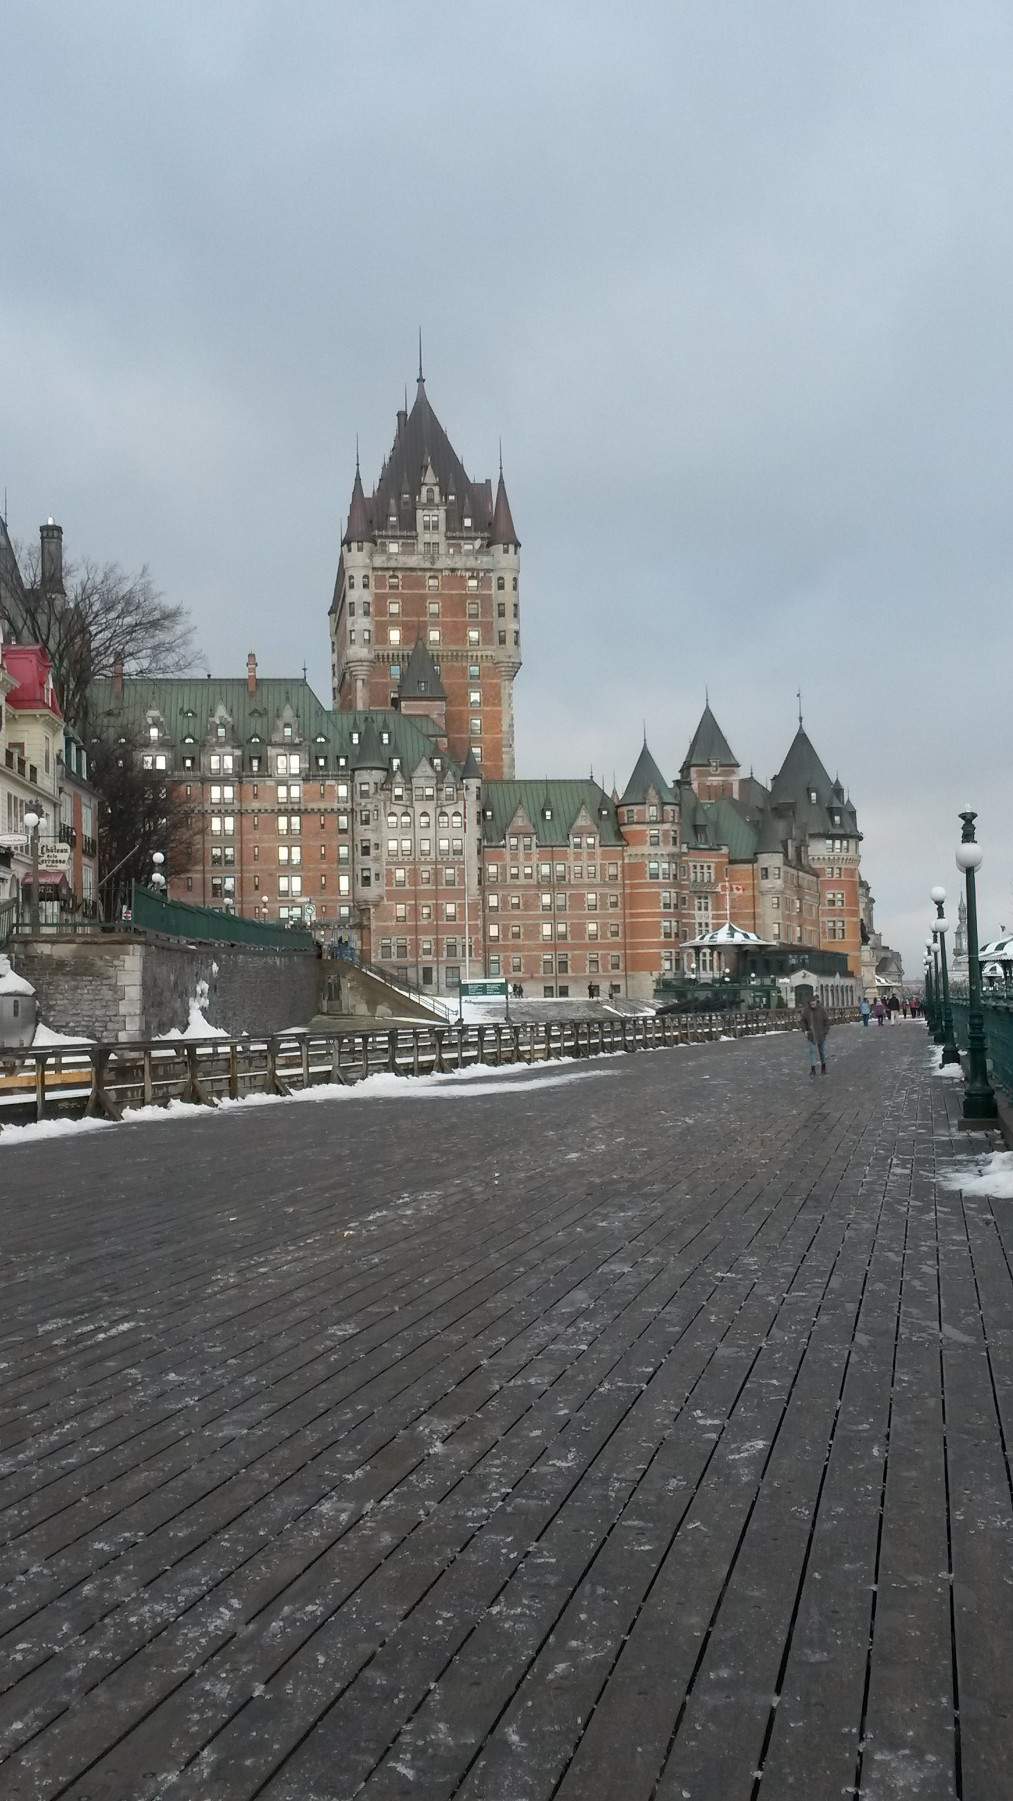 Chateau Frontenac from Governors' Promenade